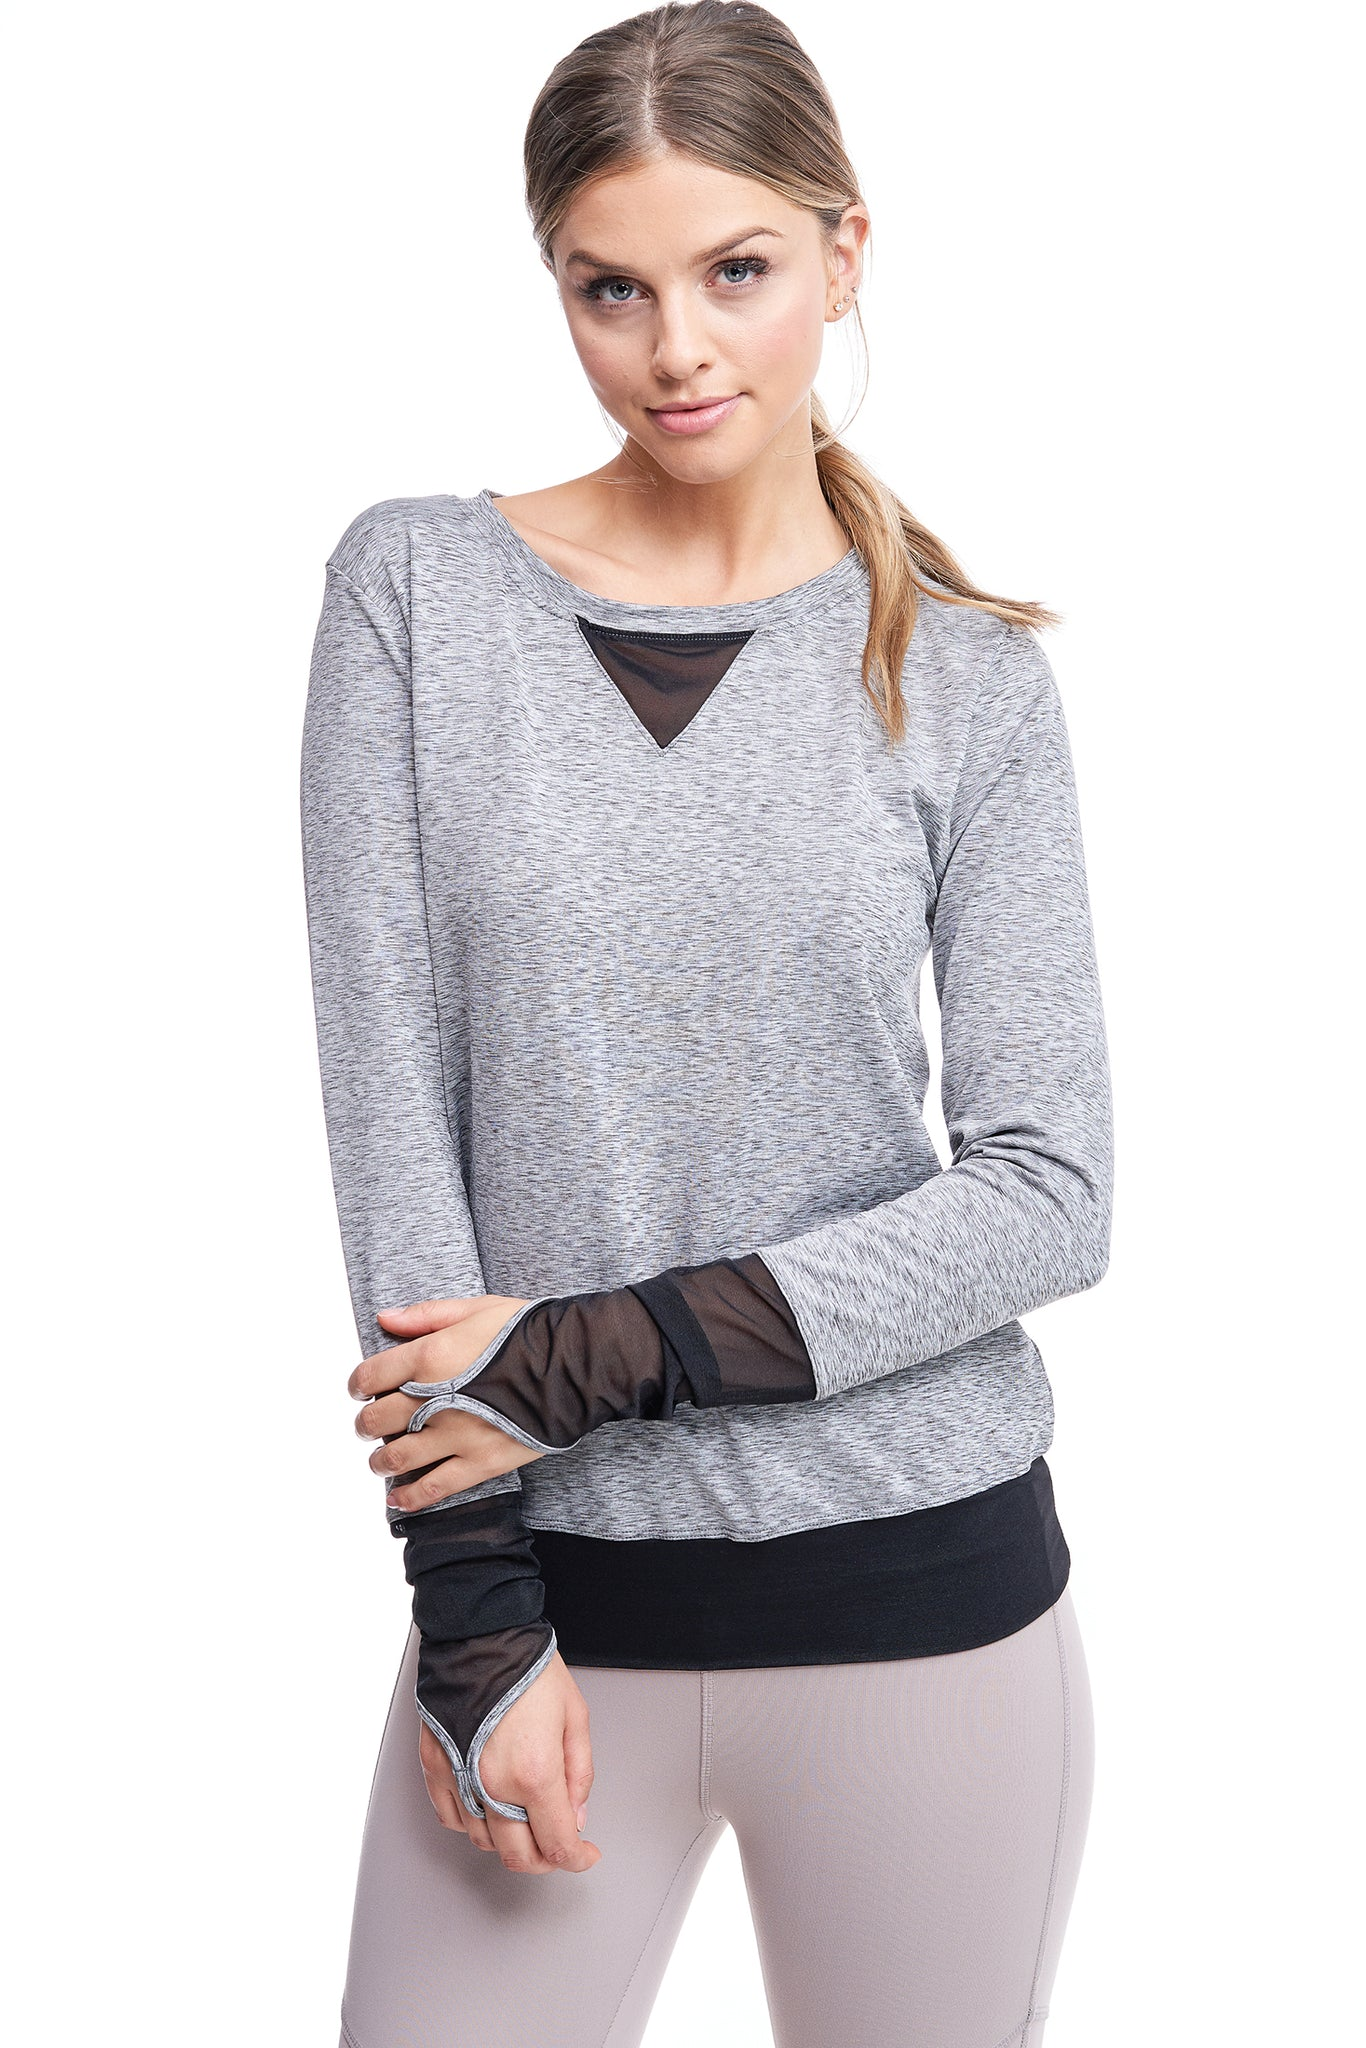 ALL ANGLES MESH PULL OVER | HEATHER